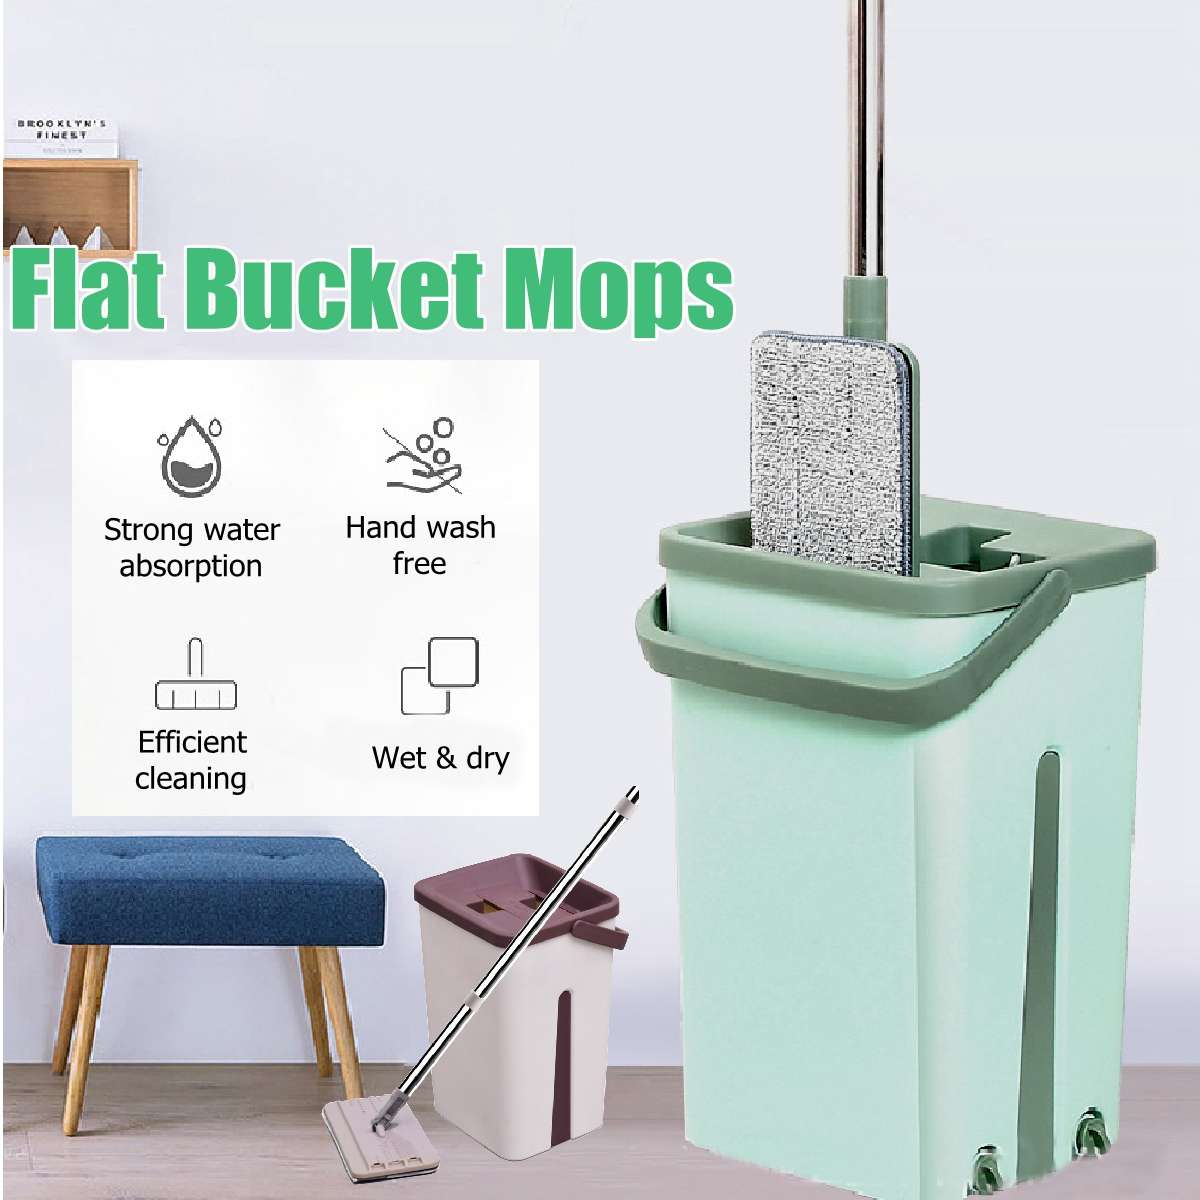 Flat Squeeze Mop Bucket Hand Free Wringing Stainless Steel Mop Self Wet And Cleaning System Dry Cleaning Microfiber Mop Floor